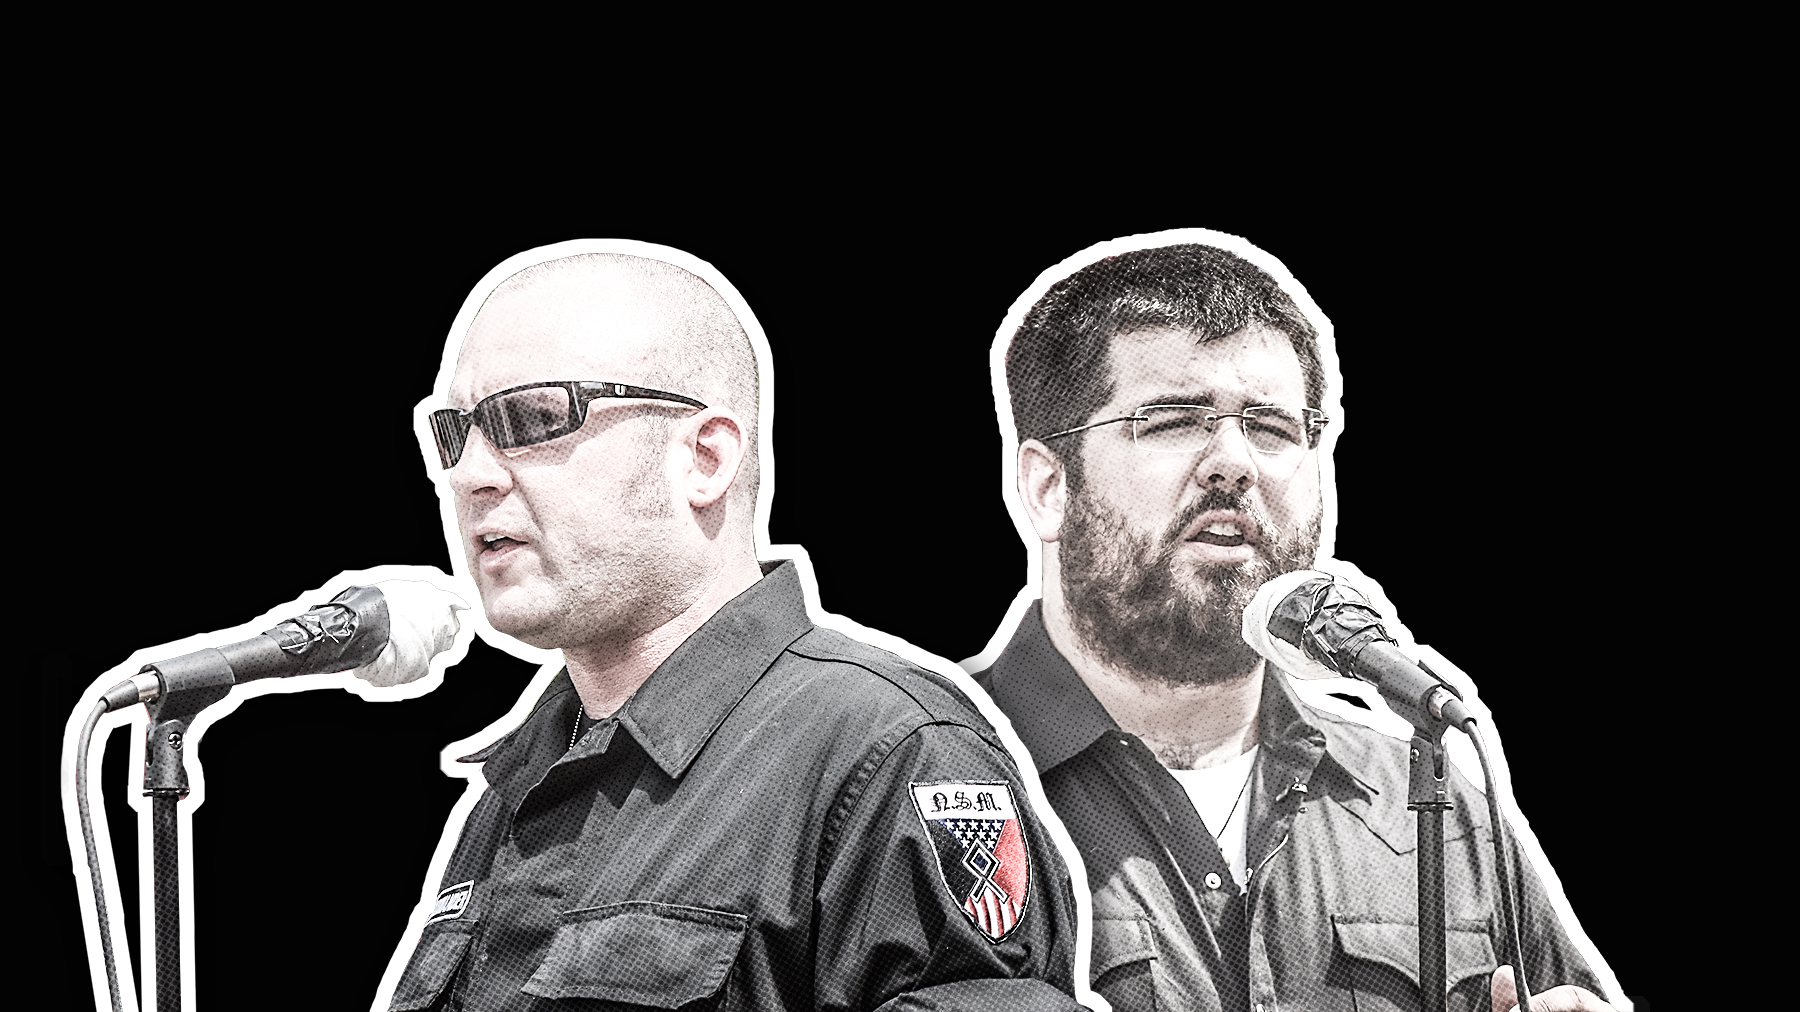 Two Prominent Neo-Nazis Recant, but Their Actions Sow Doubts